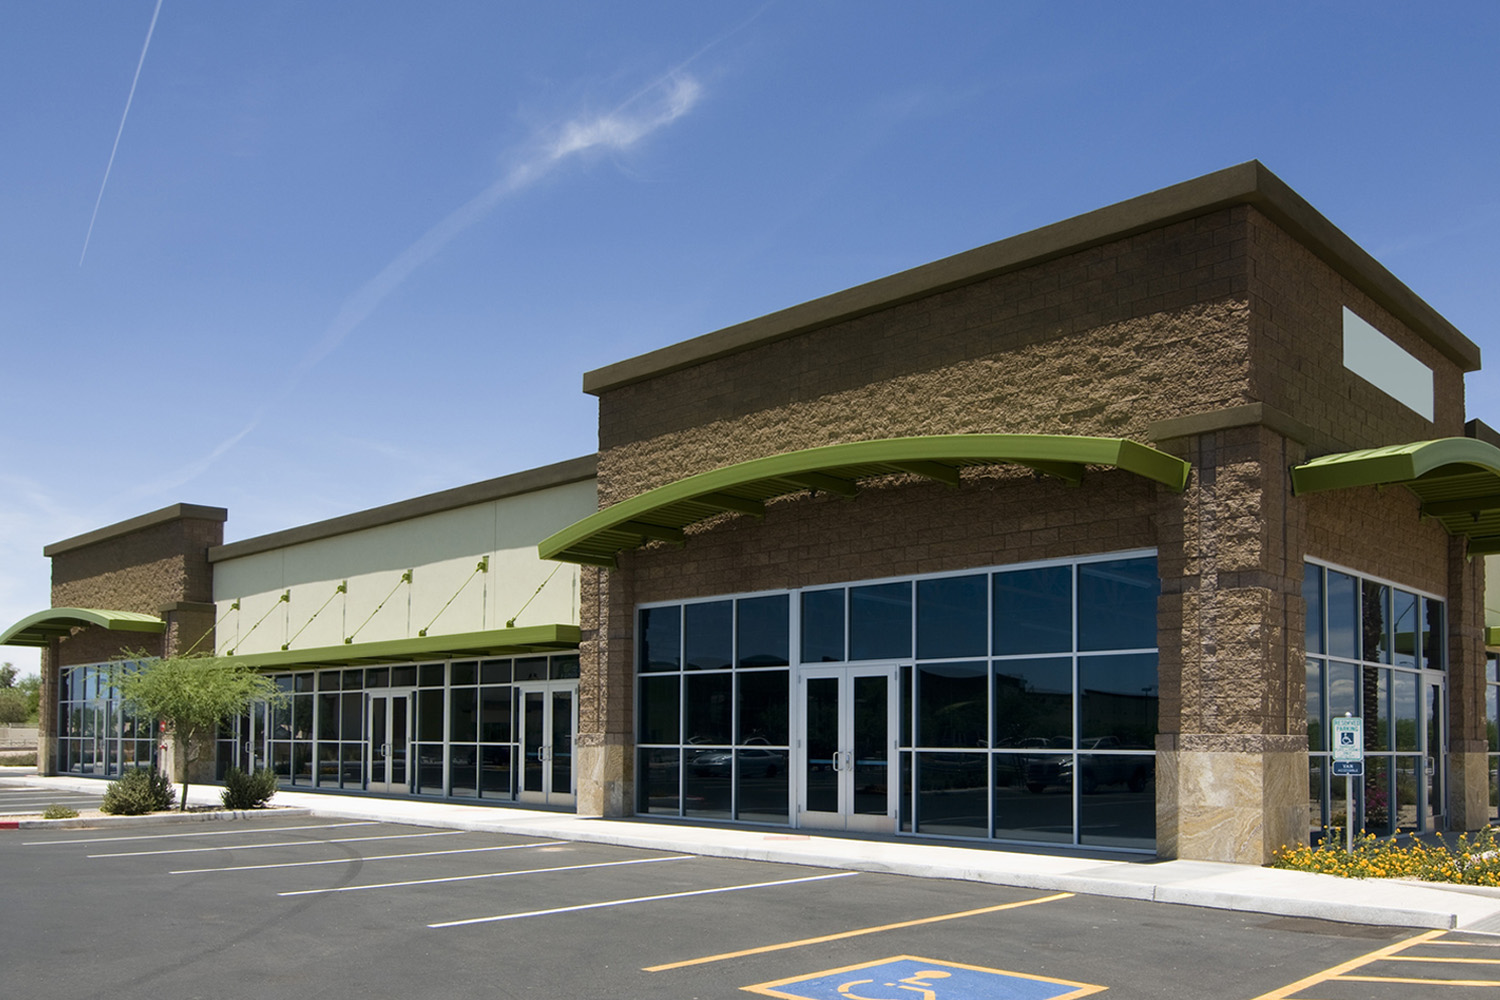 12 commercial retail buildings design images small for Commercial building plans